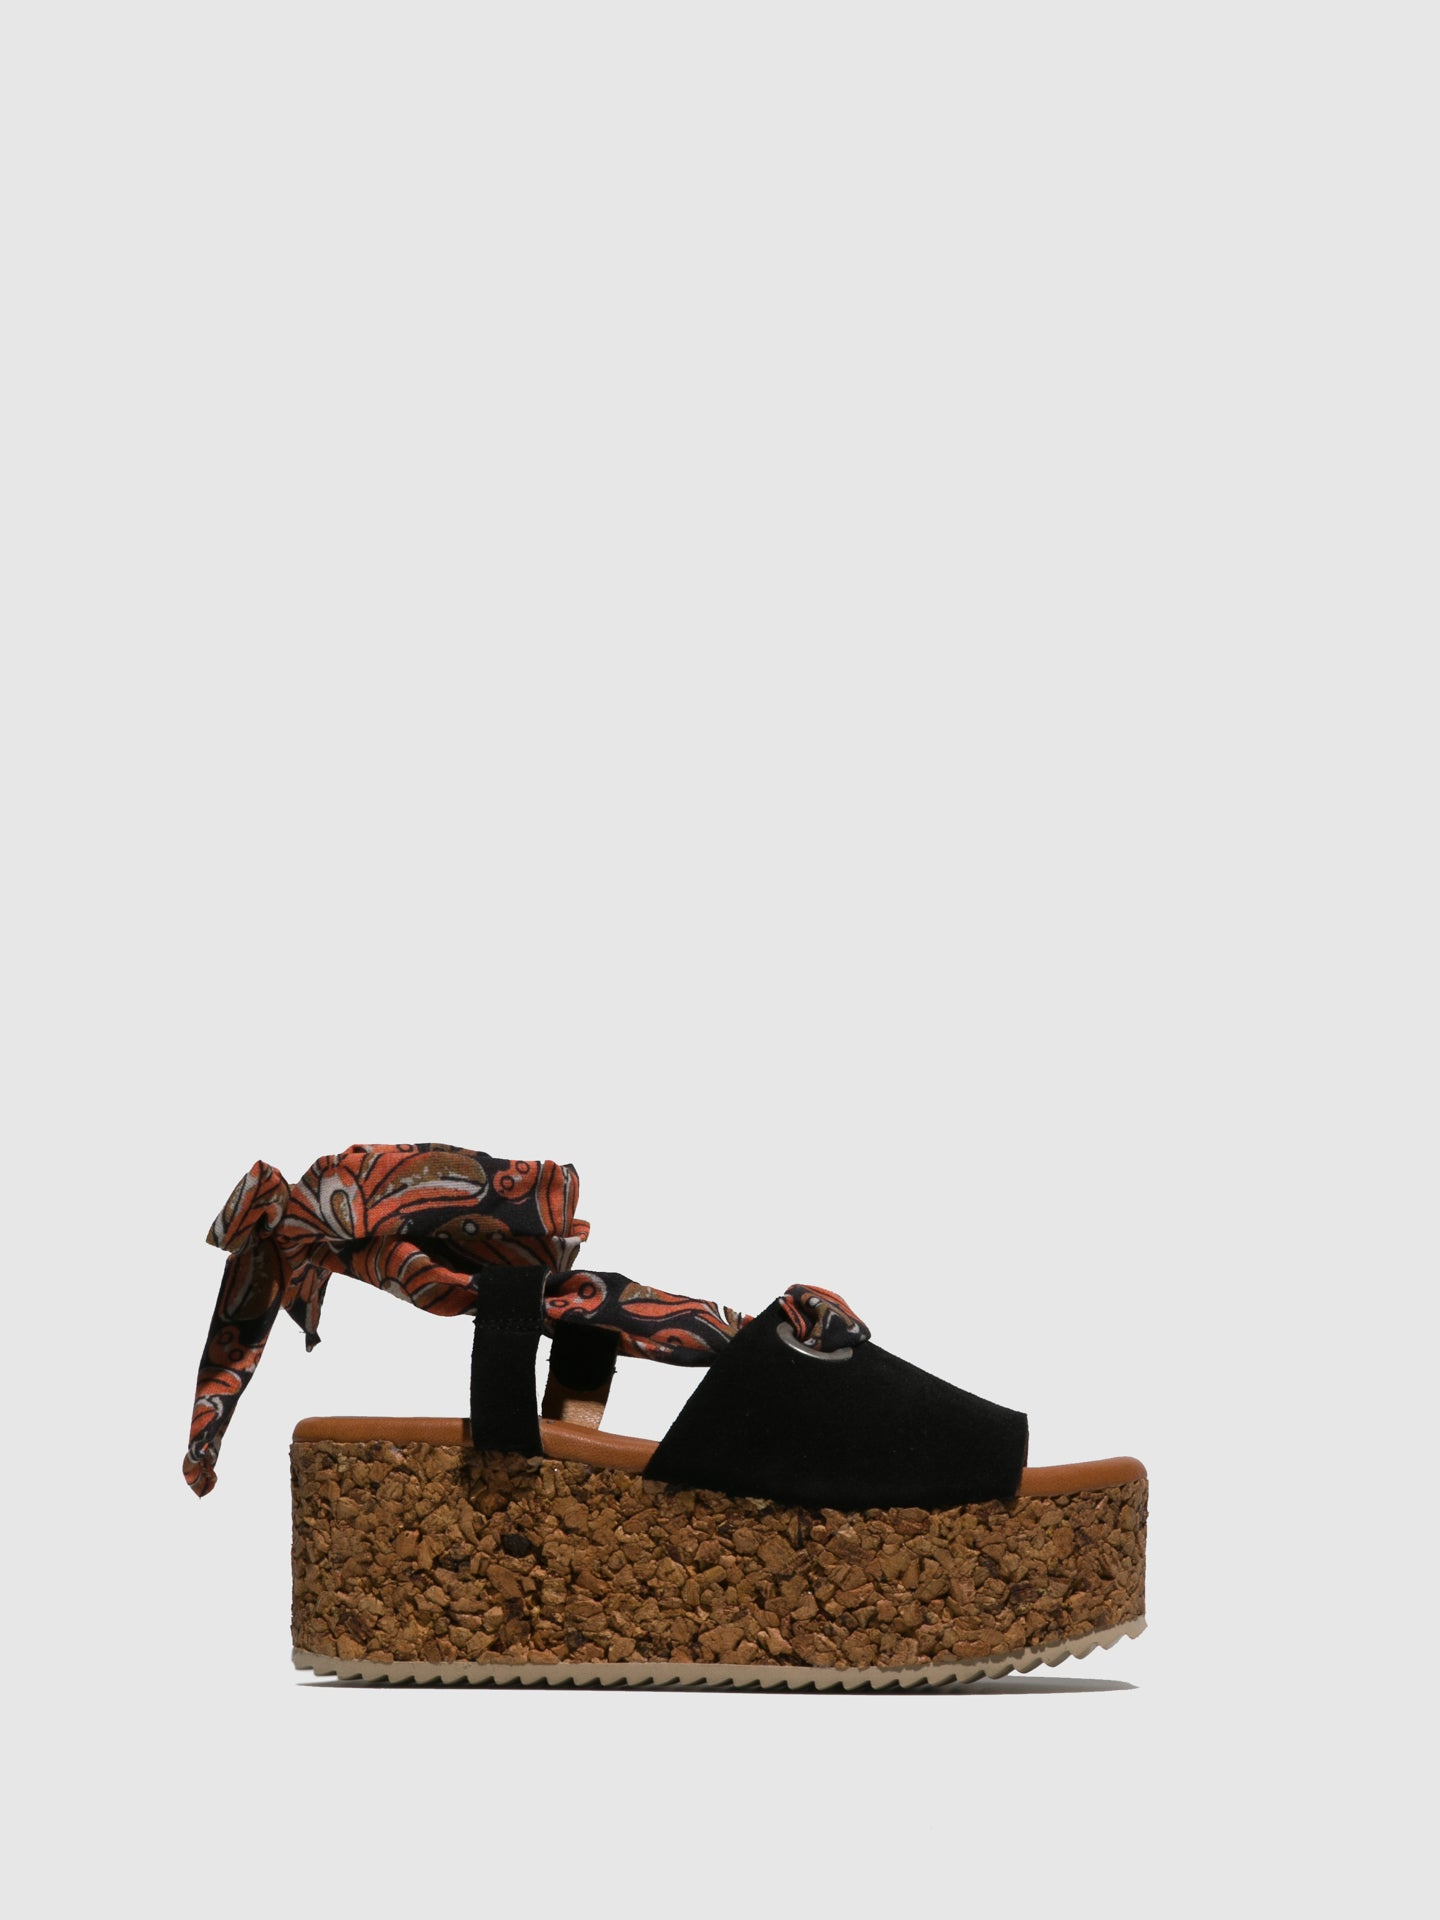 Marila Shoes Black Platform Sandals